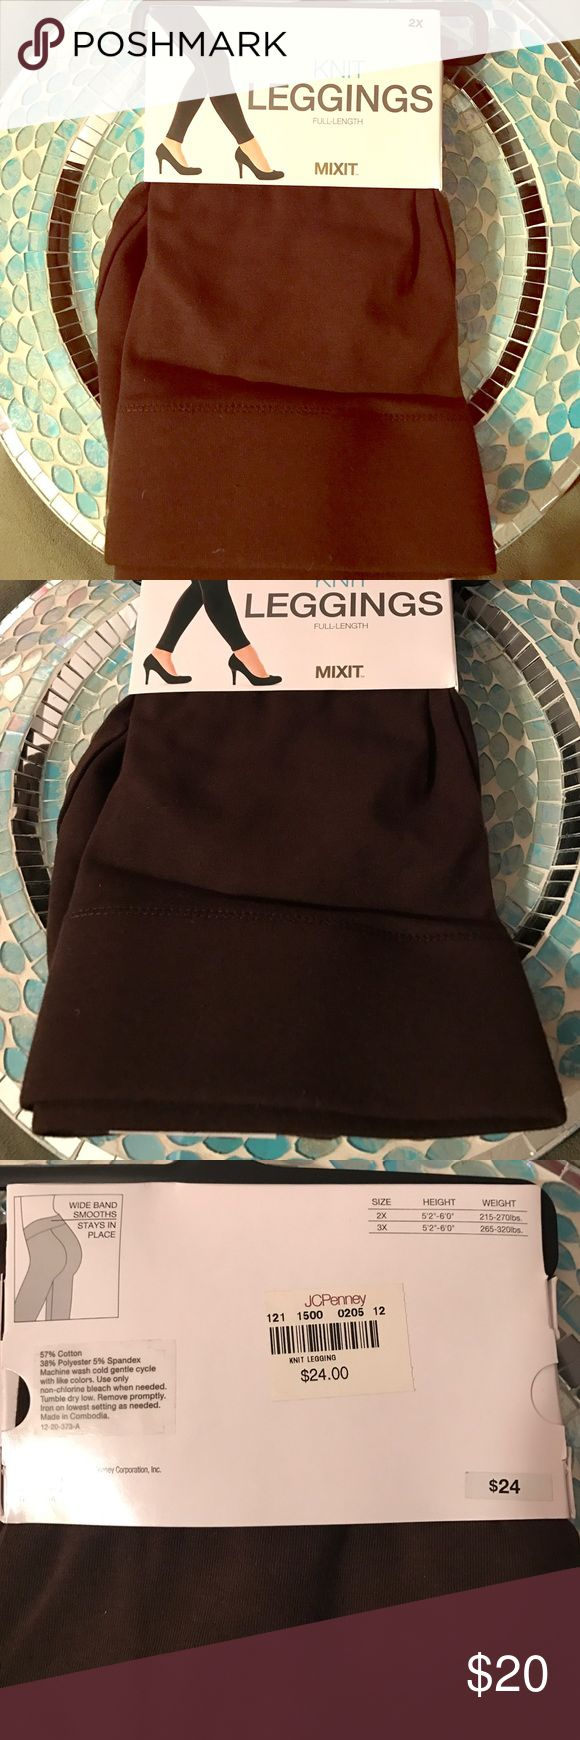 💃🏼NWT Plus Size Brown Leggings 💃🏼 Ever get tired of wearing the same ol black leggings all the time (or everyday, no judgement here 😜). Well, switch it up and try these fabulous brown leggings out! Full length, super soft and stretchy material, 57% cotton, 38% polyester, 5% Spandex. Wide band for maximum comfort and smoothness, these will stay in place! I own three pairs of black leggings and one brown from this brand, they're FABULOUS! Super high quality! Bundle and SAVE💜💜 Pants…